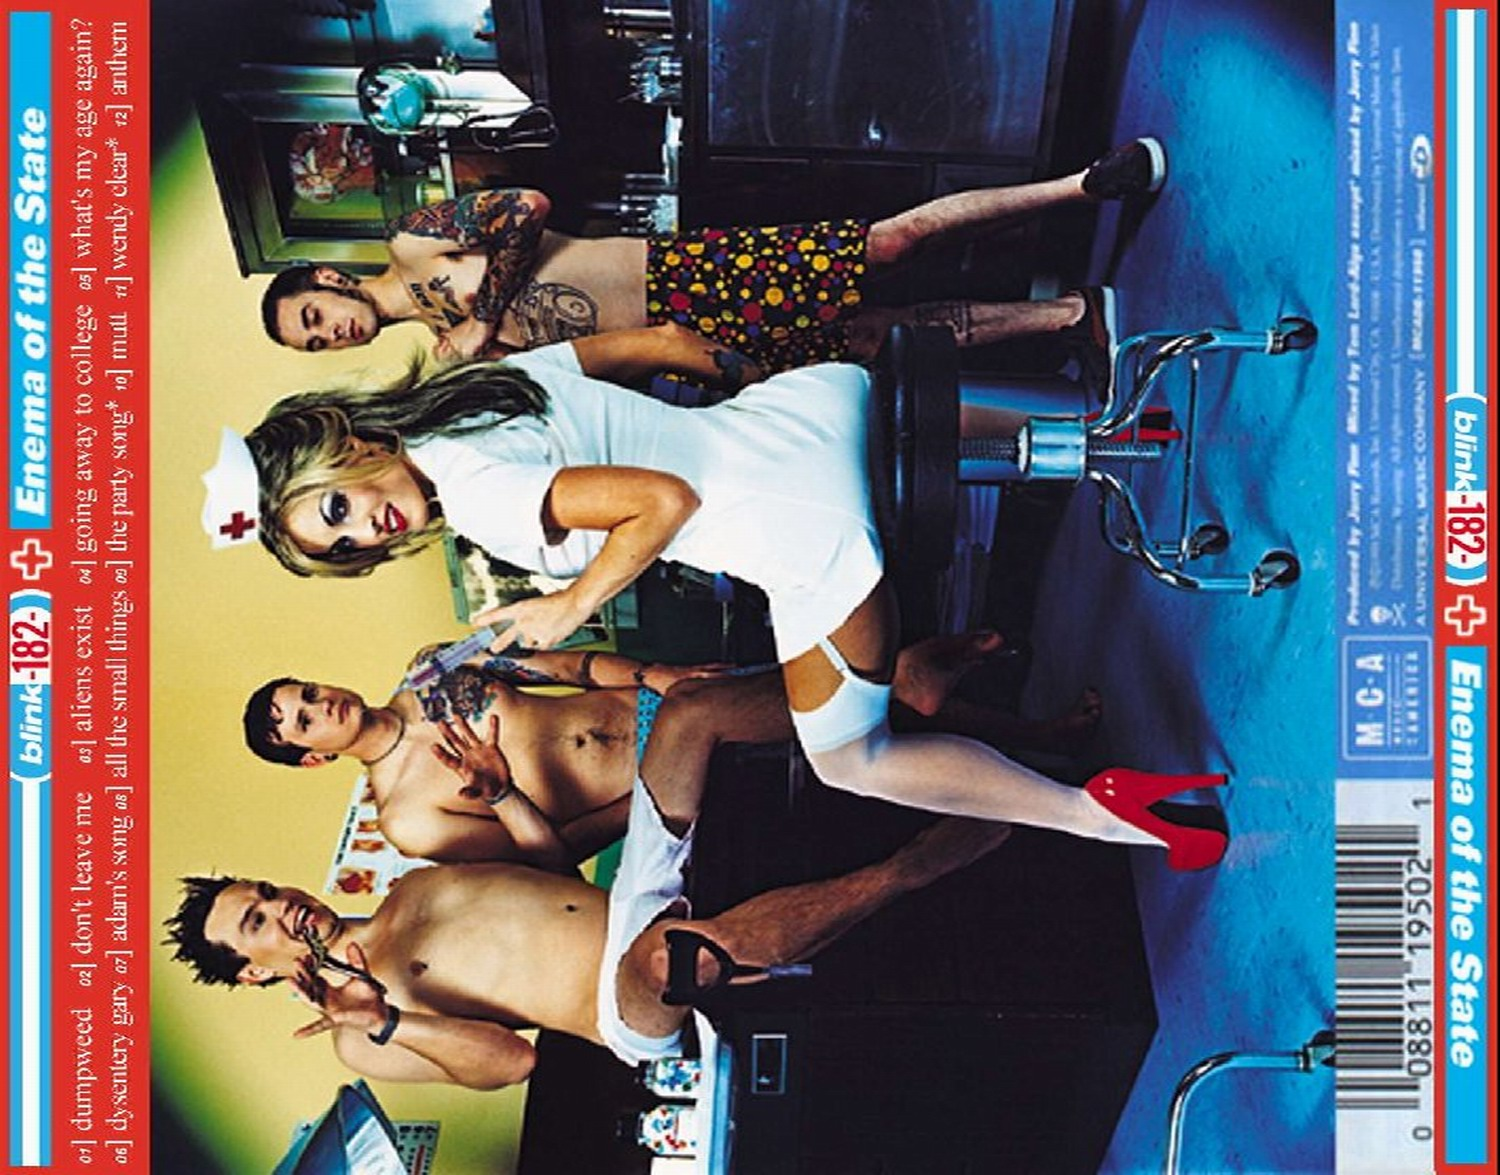 Copertina cd Blink 182 - enema of the state - ba